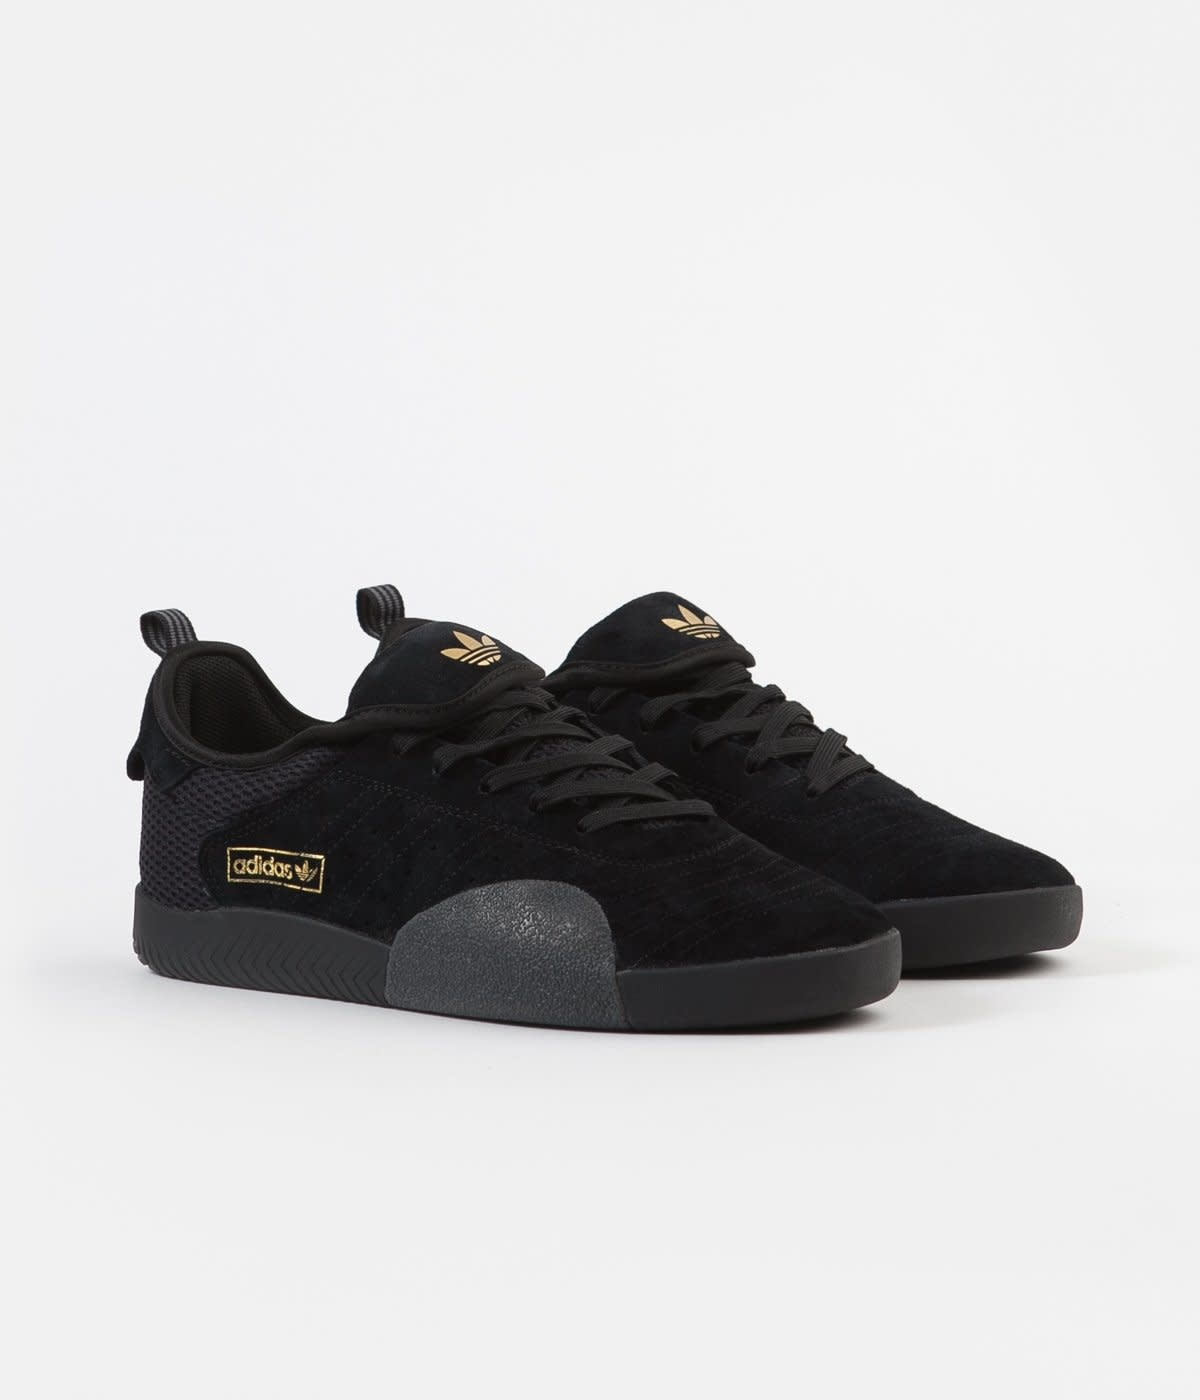 Adidas 3ST.003 Black/White/Gold